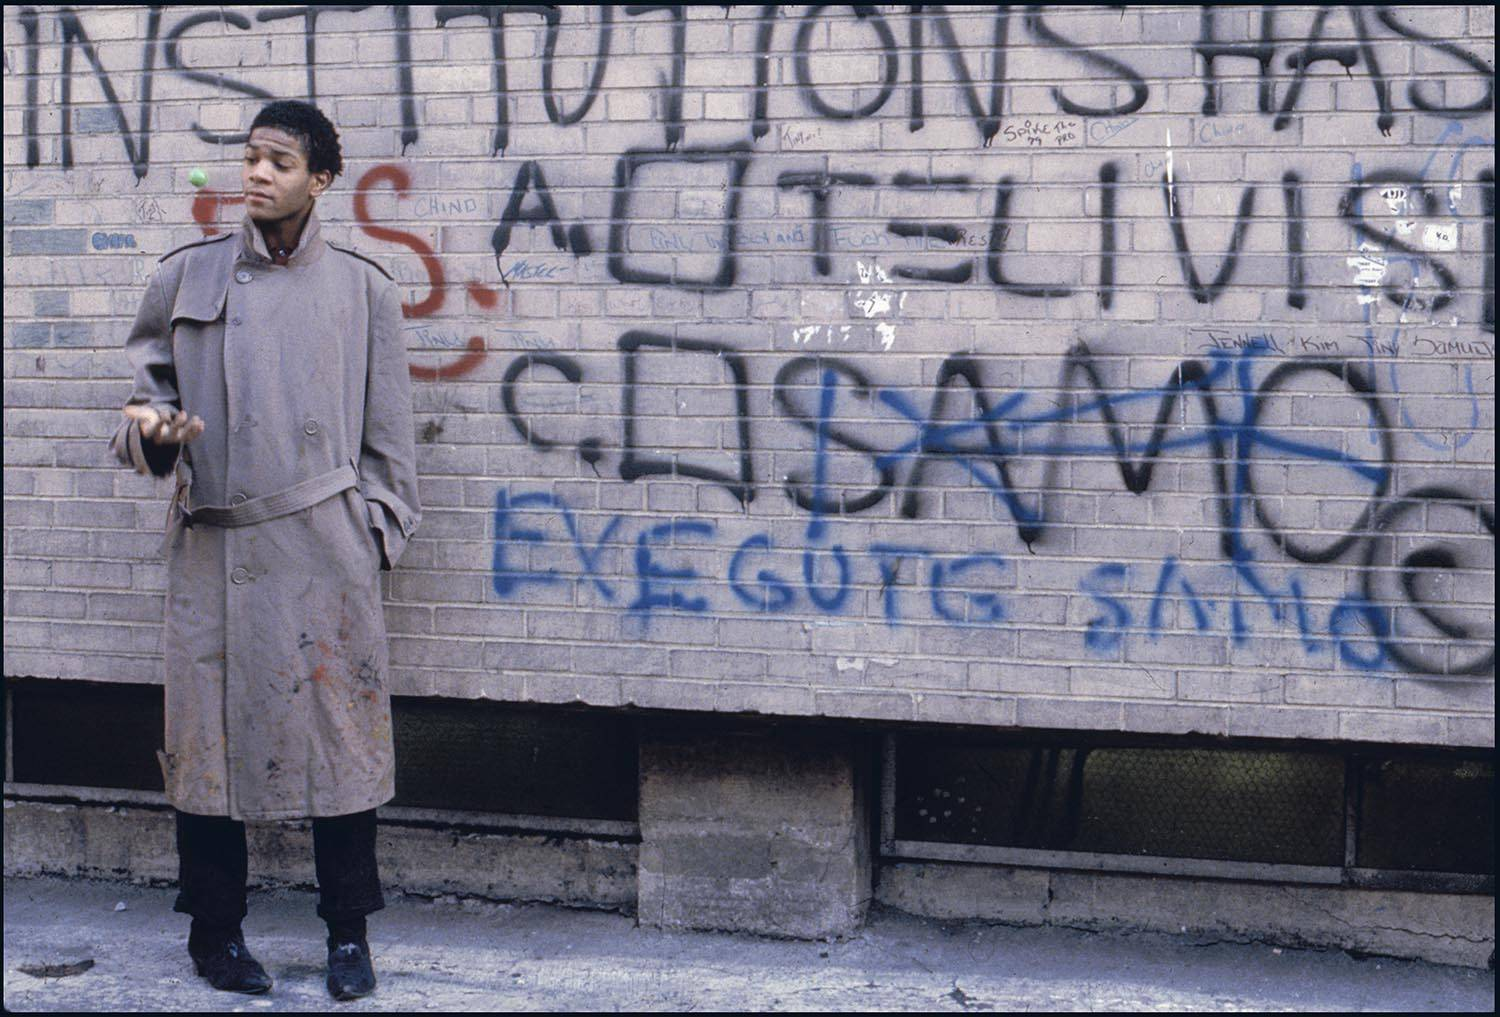 City-As-School: Basquiat op straat